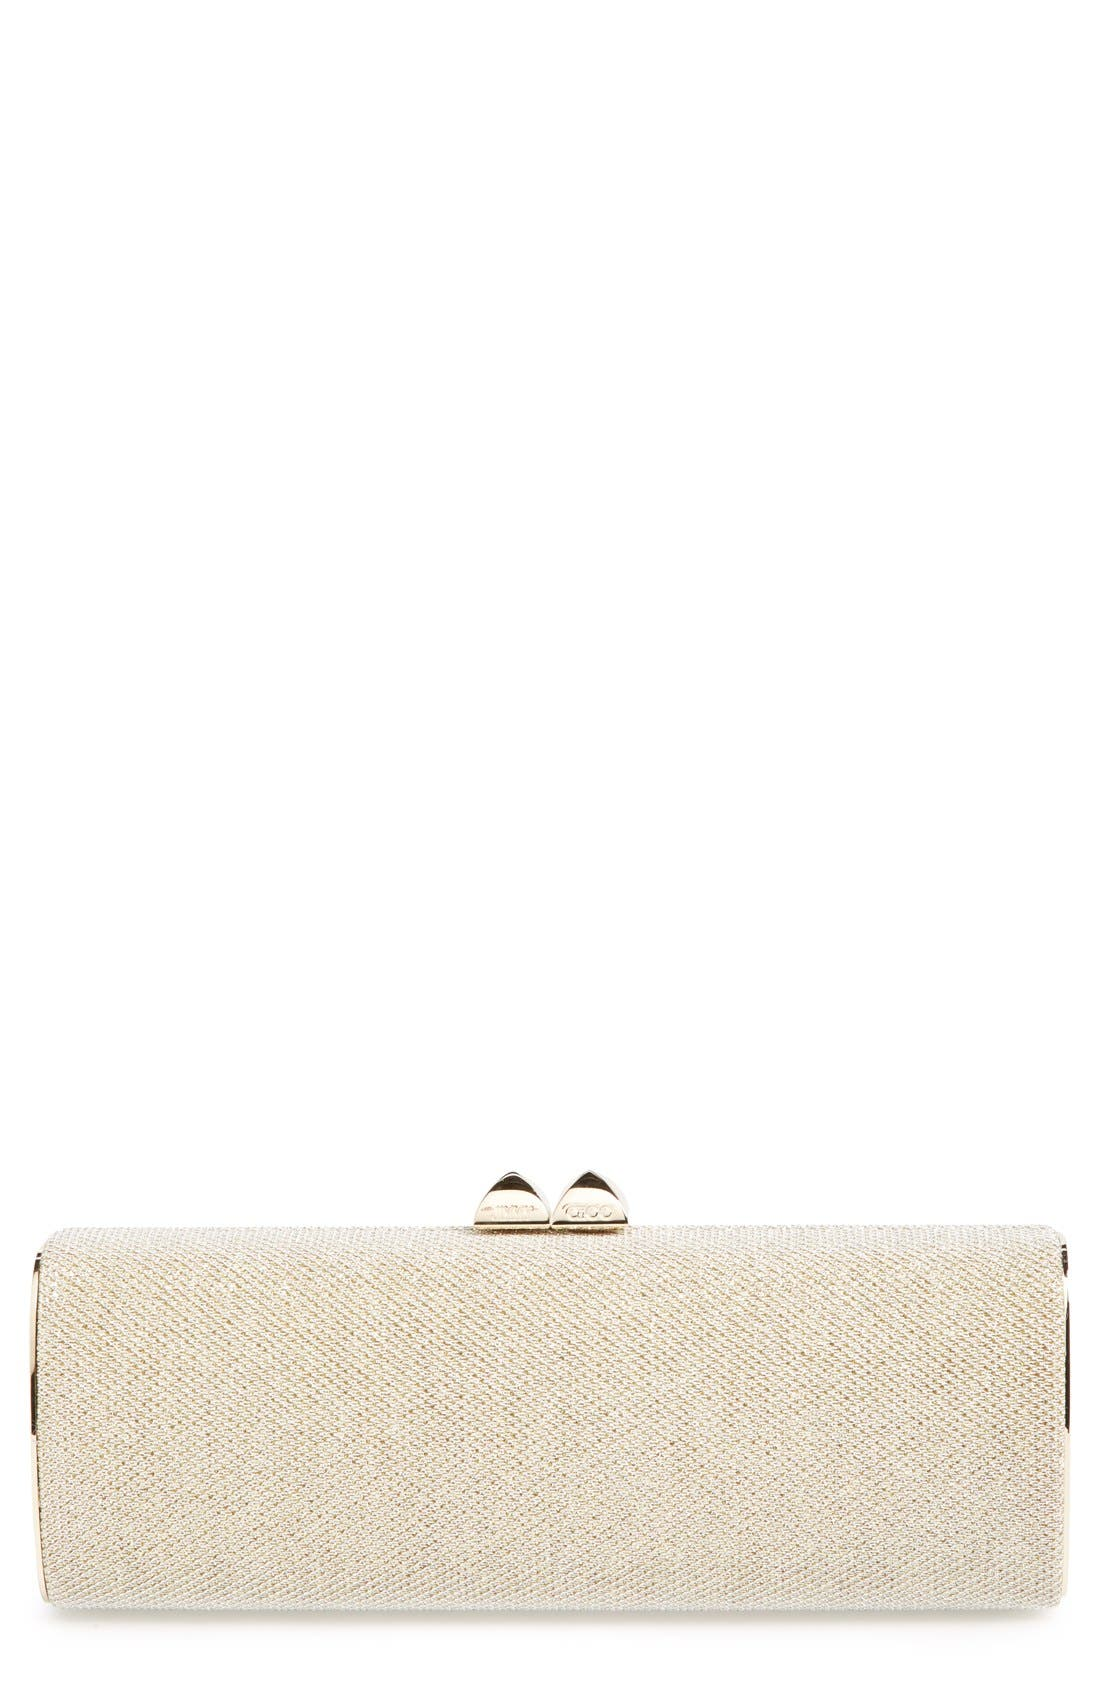 Alternate Image 1 Selected - Jimmy Choo 'Charm' Lamé Glitter Clutch